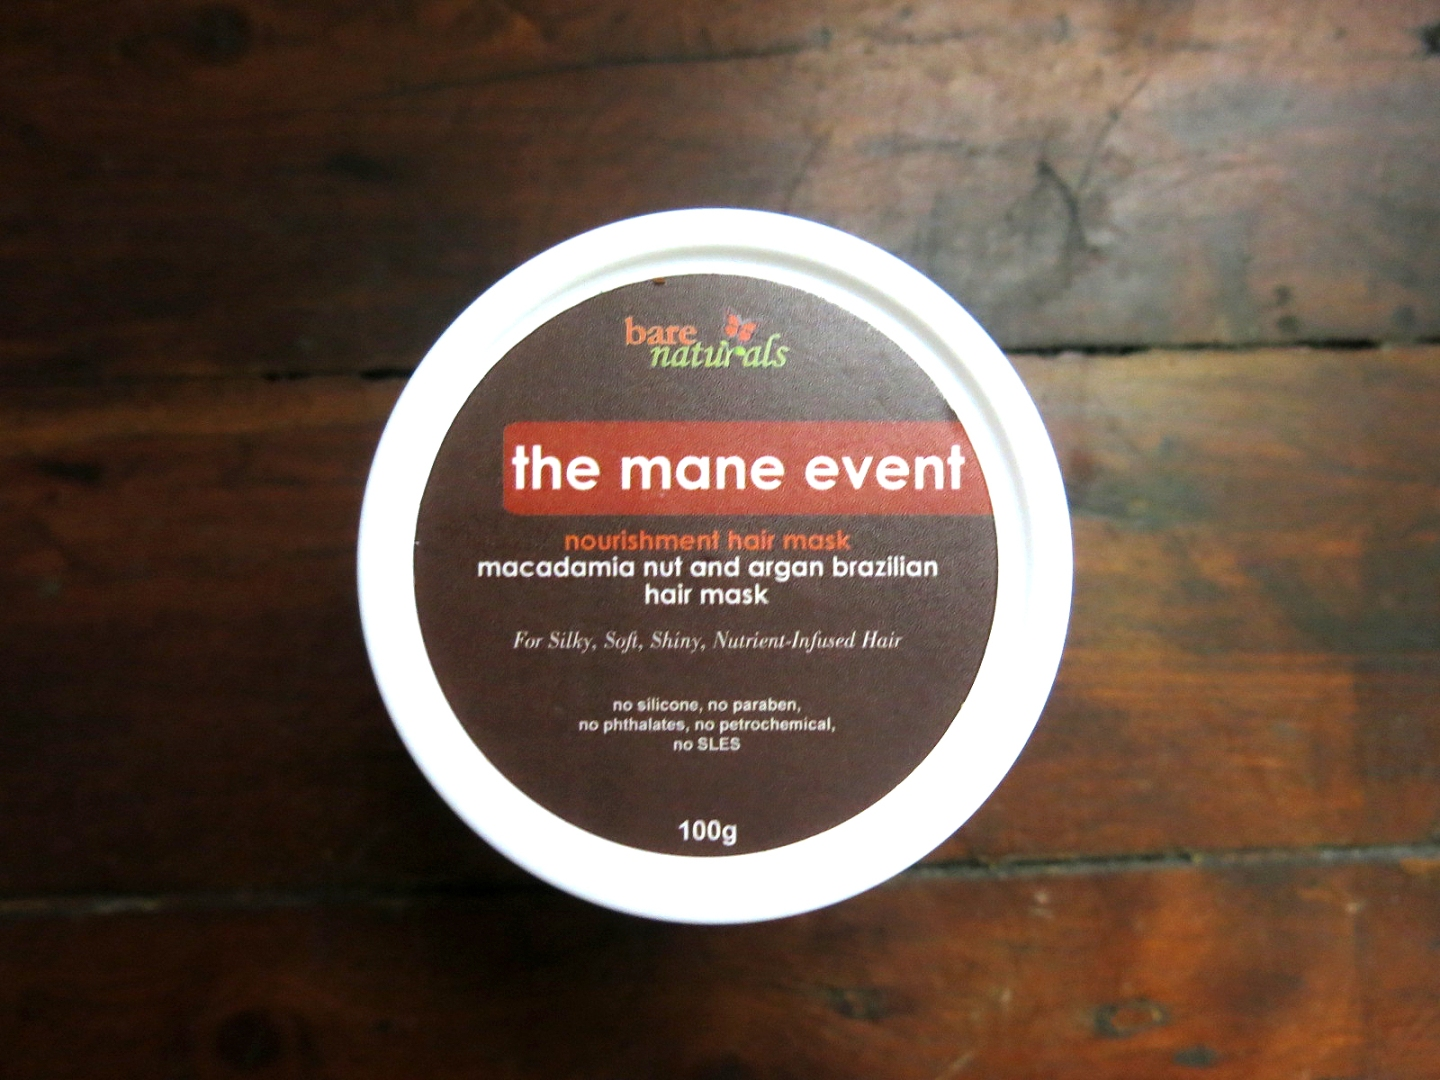 Bare Naturals The Mane Event Nourishing Hair Mask in Oat Protein, Macadamia Nut and Argan Brazilian